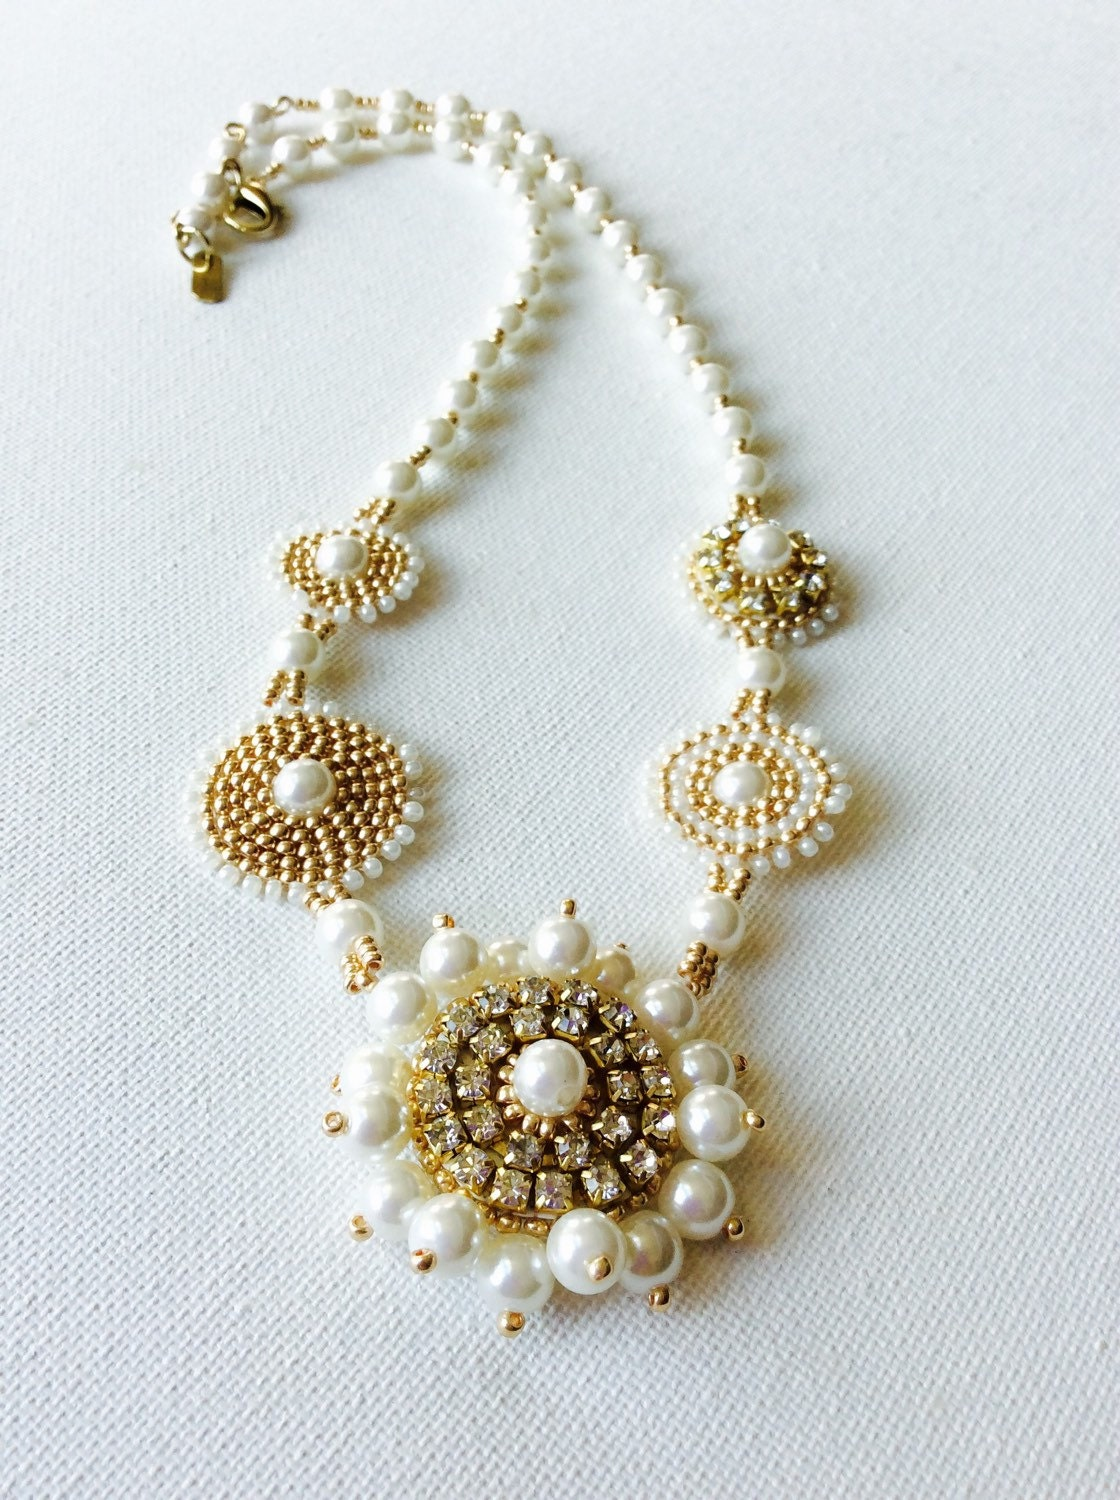 Gold bead embroidered necklace with pearls and rhinestones